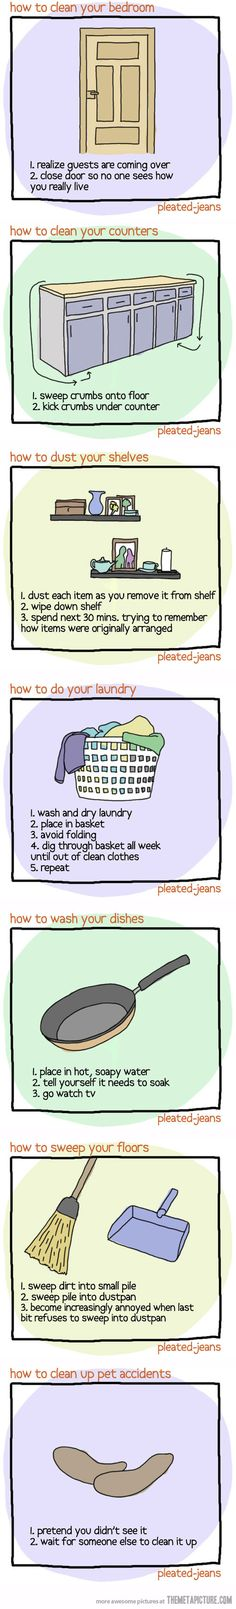 How to clean your house when guests are coming over…haha especially number 1! but never the last one.